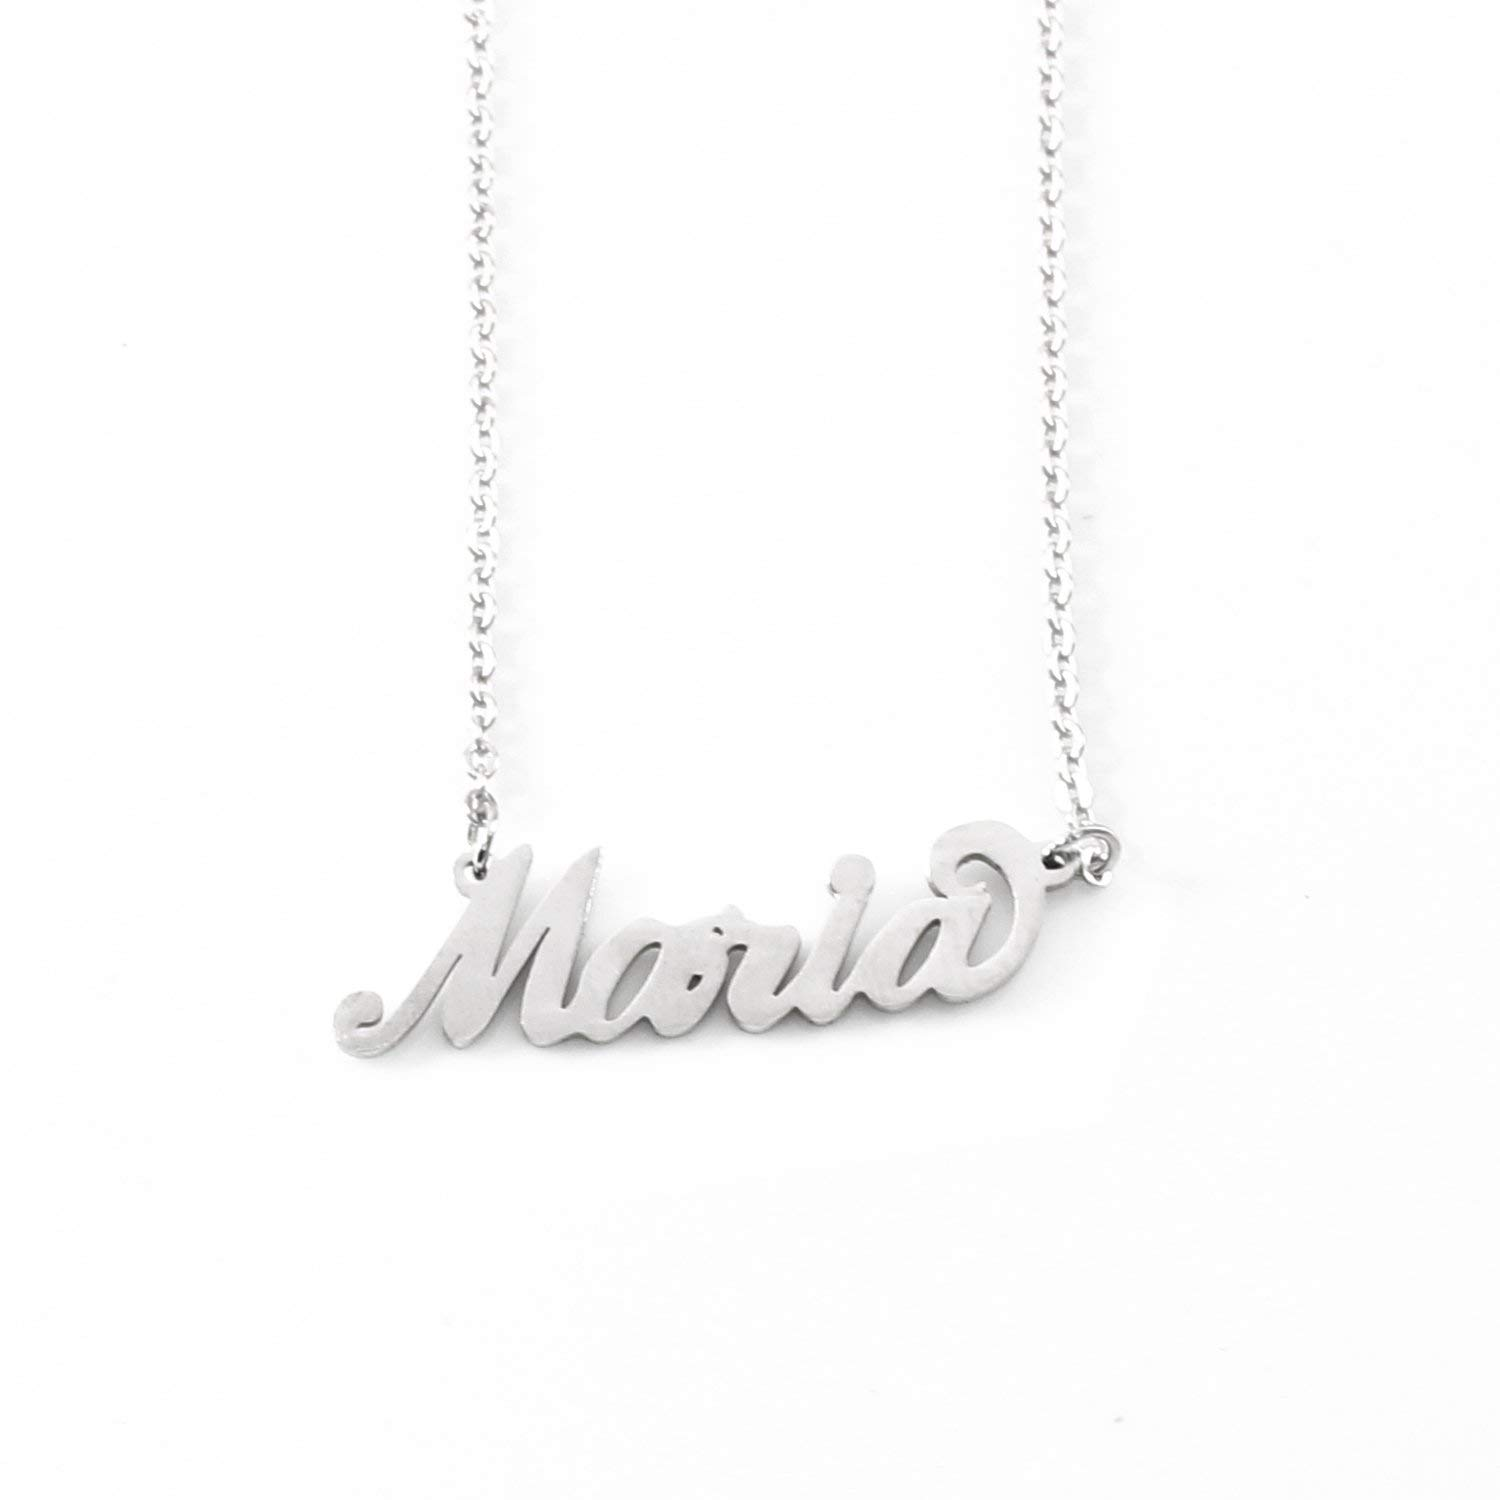 97a2e074513a2 Cheap Maria Necklace, find Maria Necklace deals on line at Alibaba.com